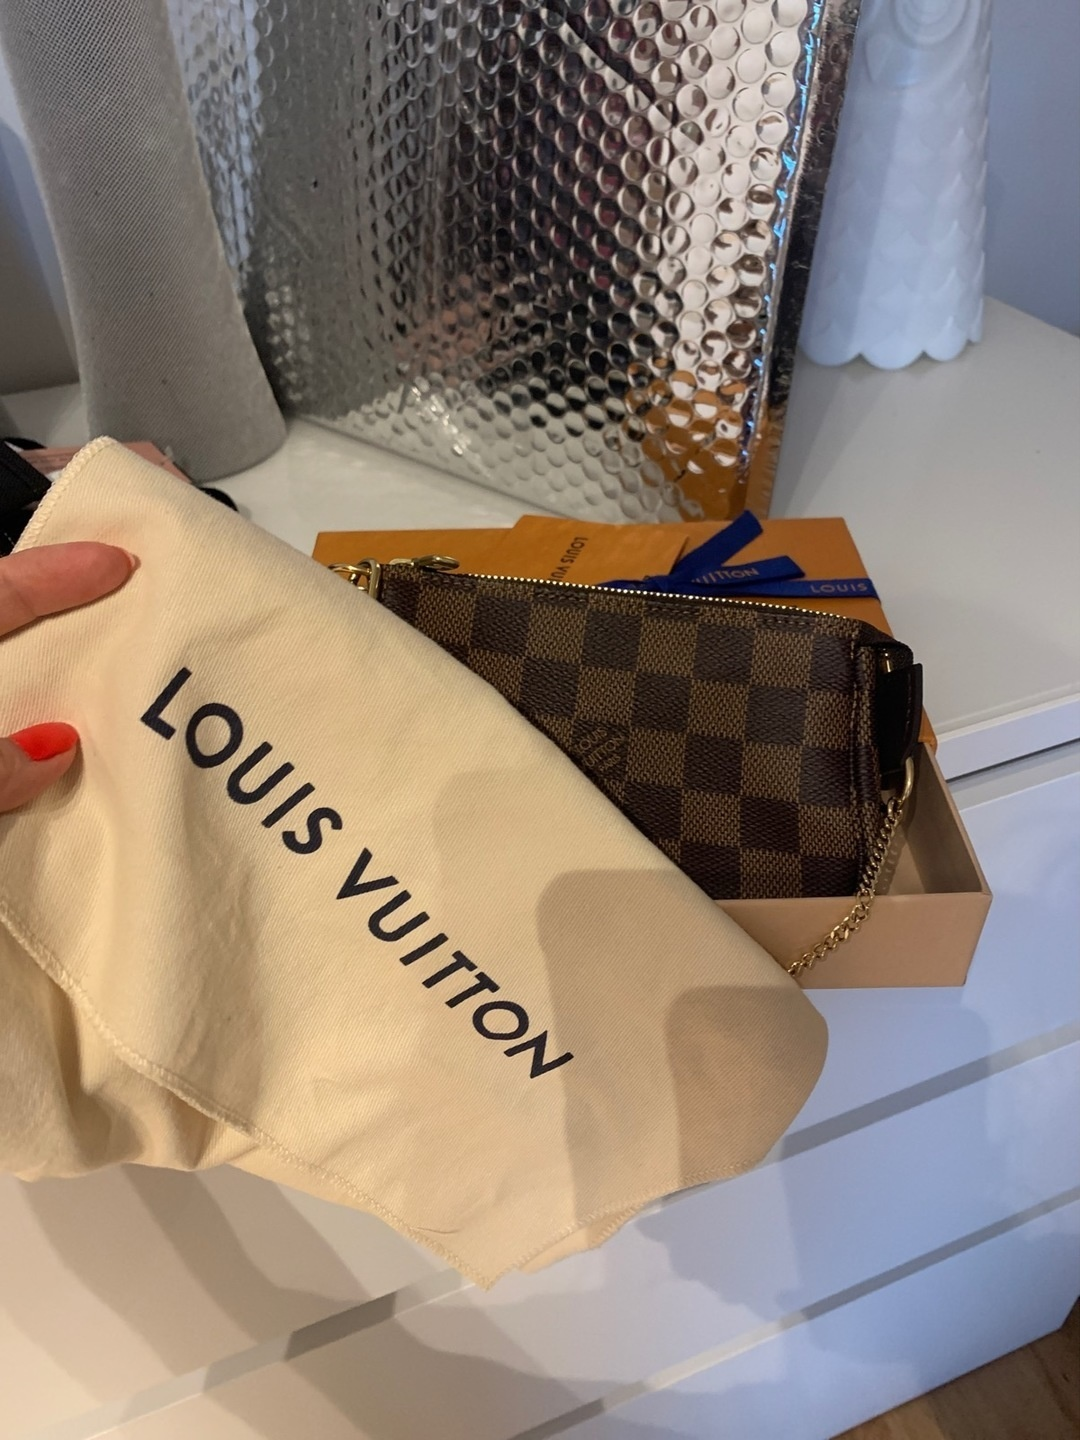 Damen taschen & geldbörsen - LOUIS VUITTON photo 4